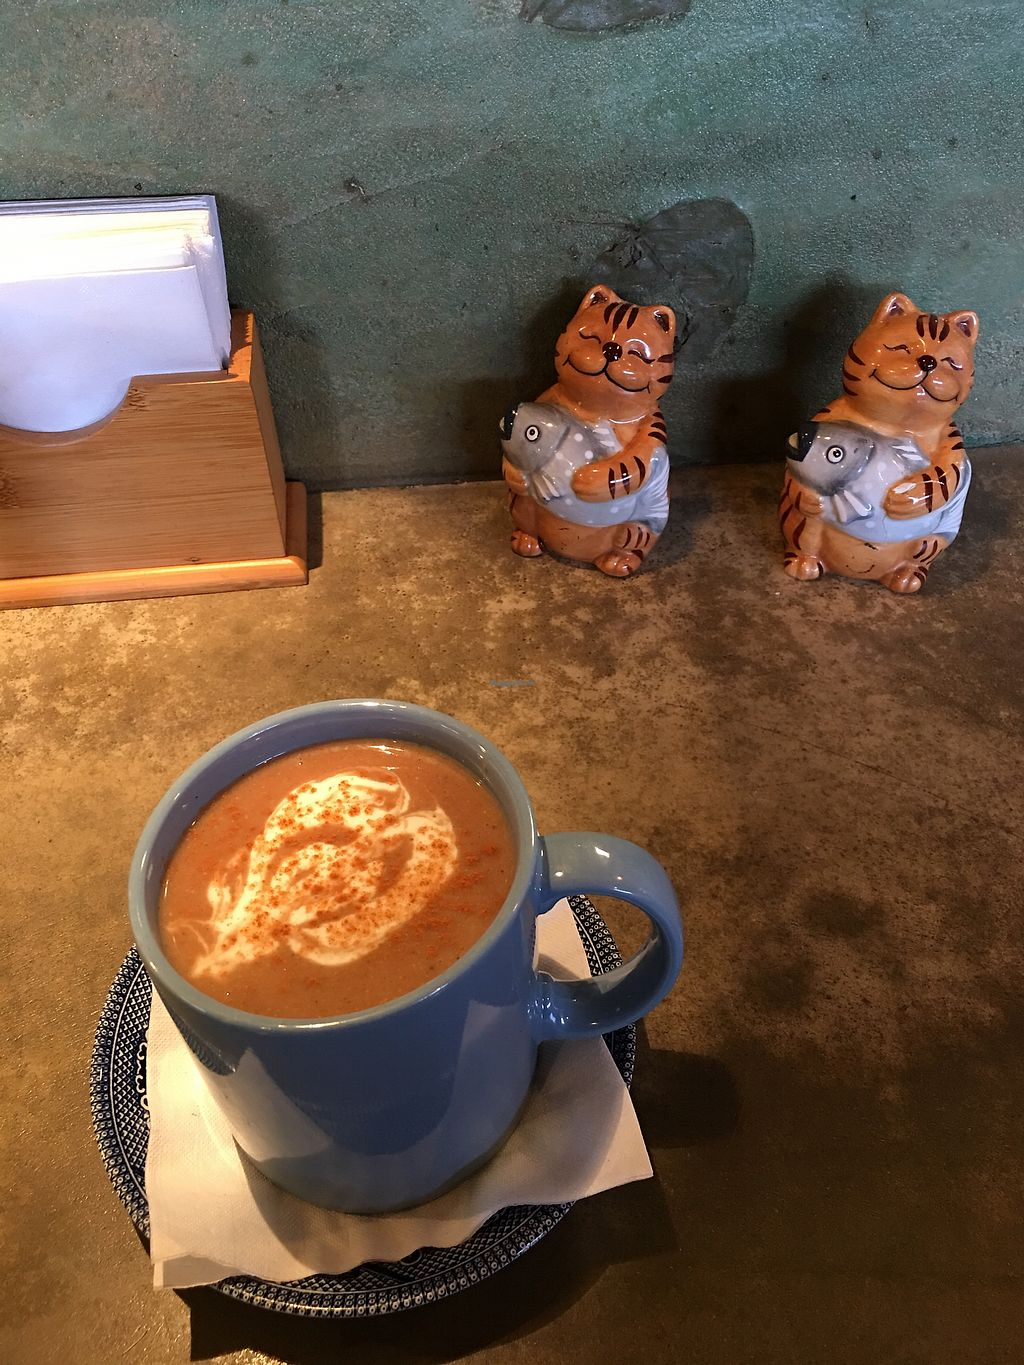 "Photo of Beautiful Day Cafe  by <a href=""/members/profile/lvasquared"">lvasquared</a> <br/>Vegan champurrado! <br/> January 19, 2018  - <a href='/contact/abuse/image/64442/348461'>Report</a>"